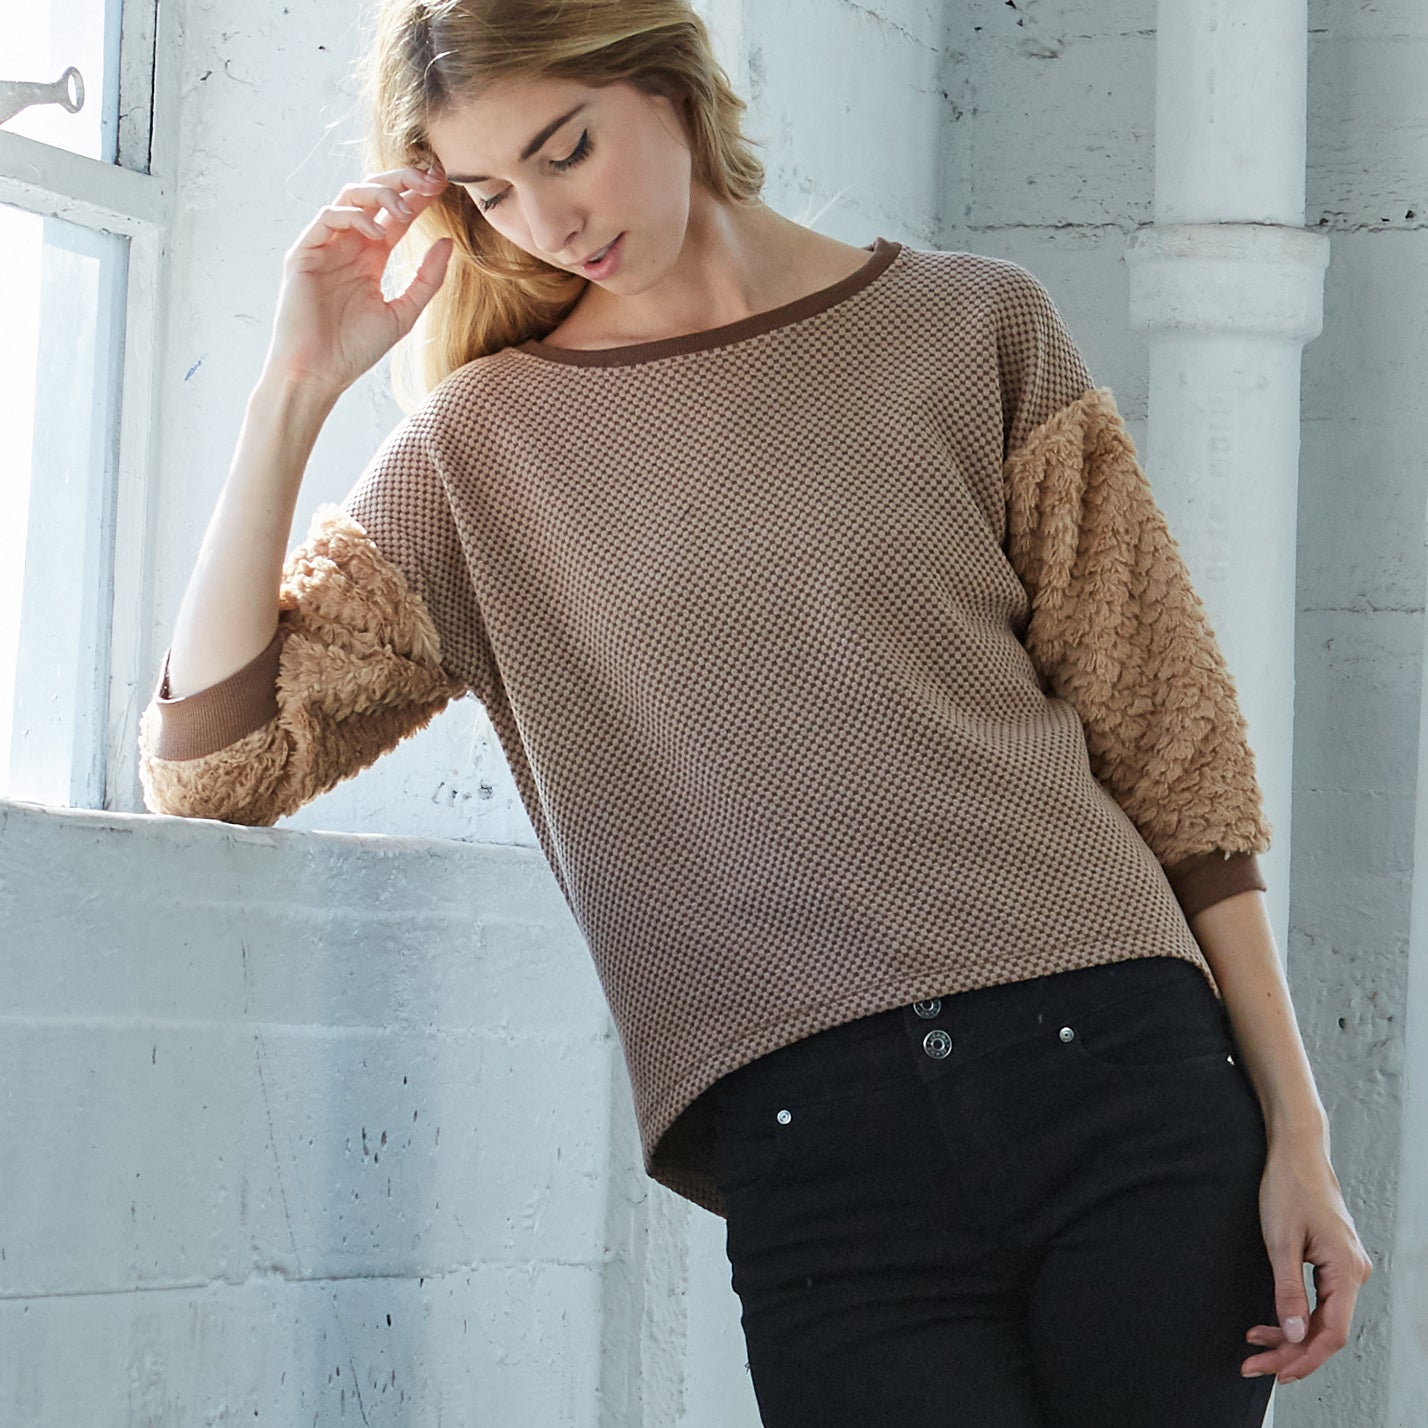 Cozy Teddy Sweater - Love, Kuza